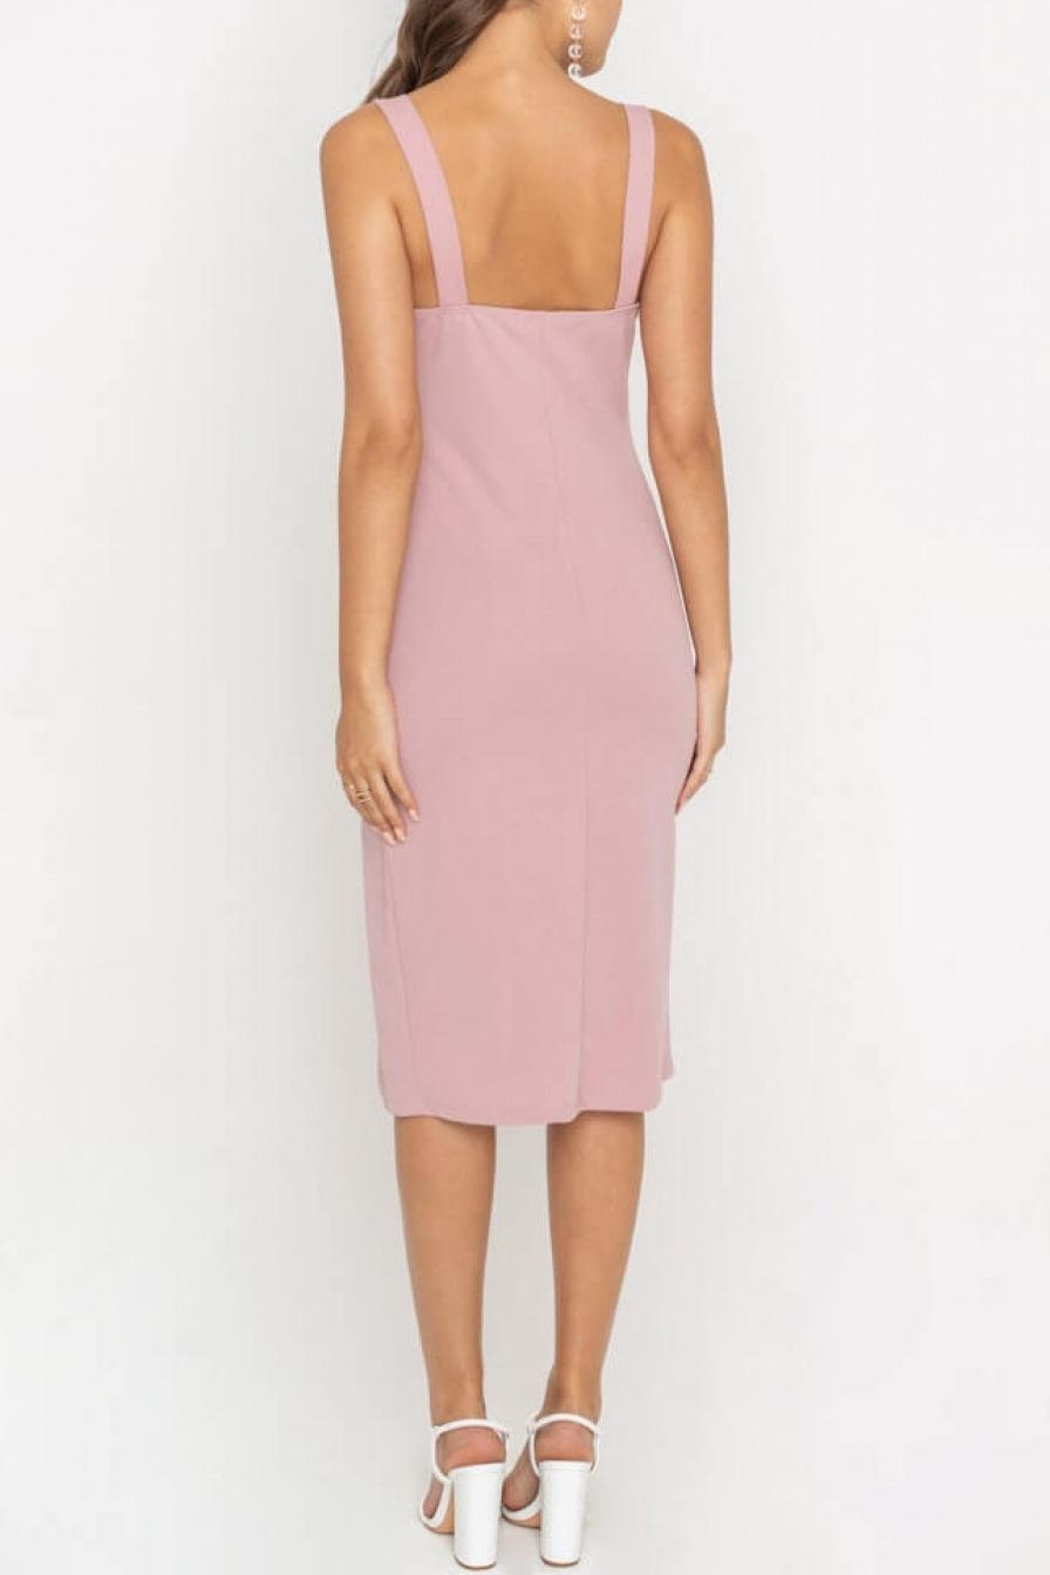 Lush Clothing  Side-Slit Fitted Cocktail-Dress - Side Cropped Image